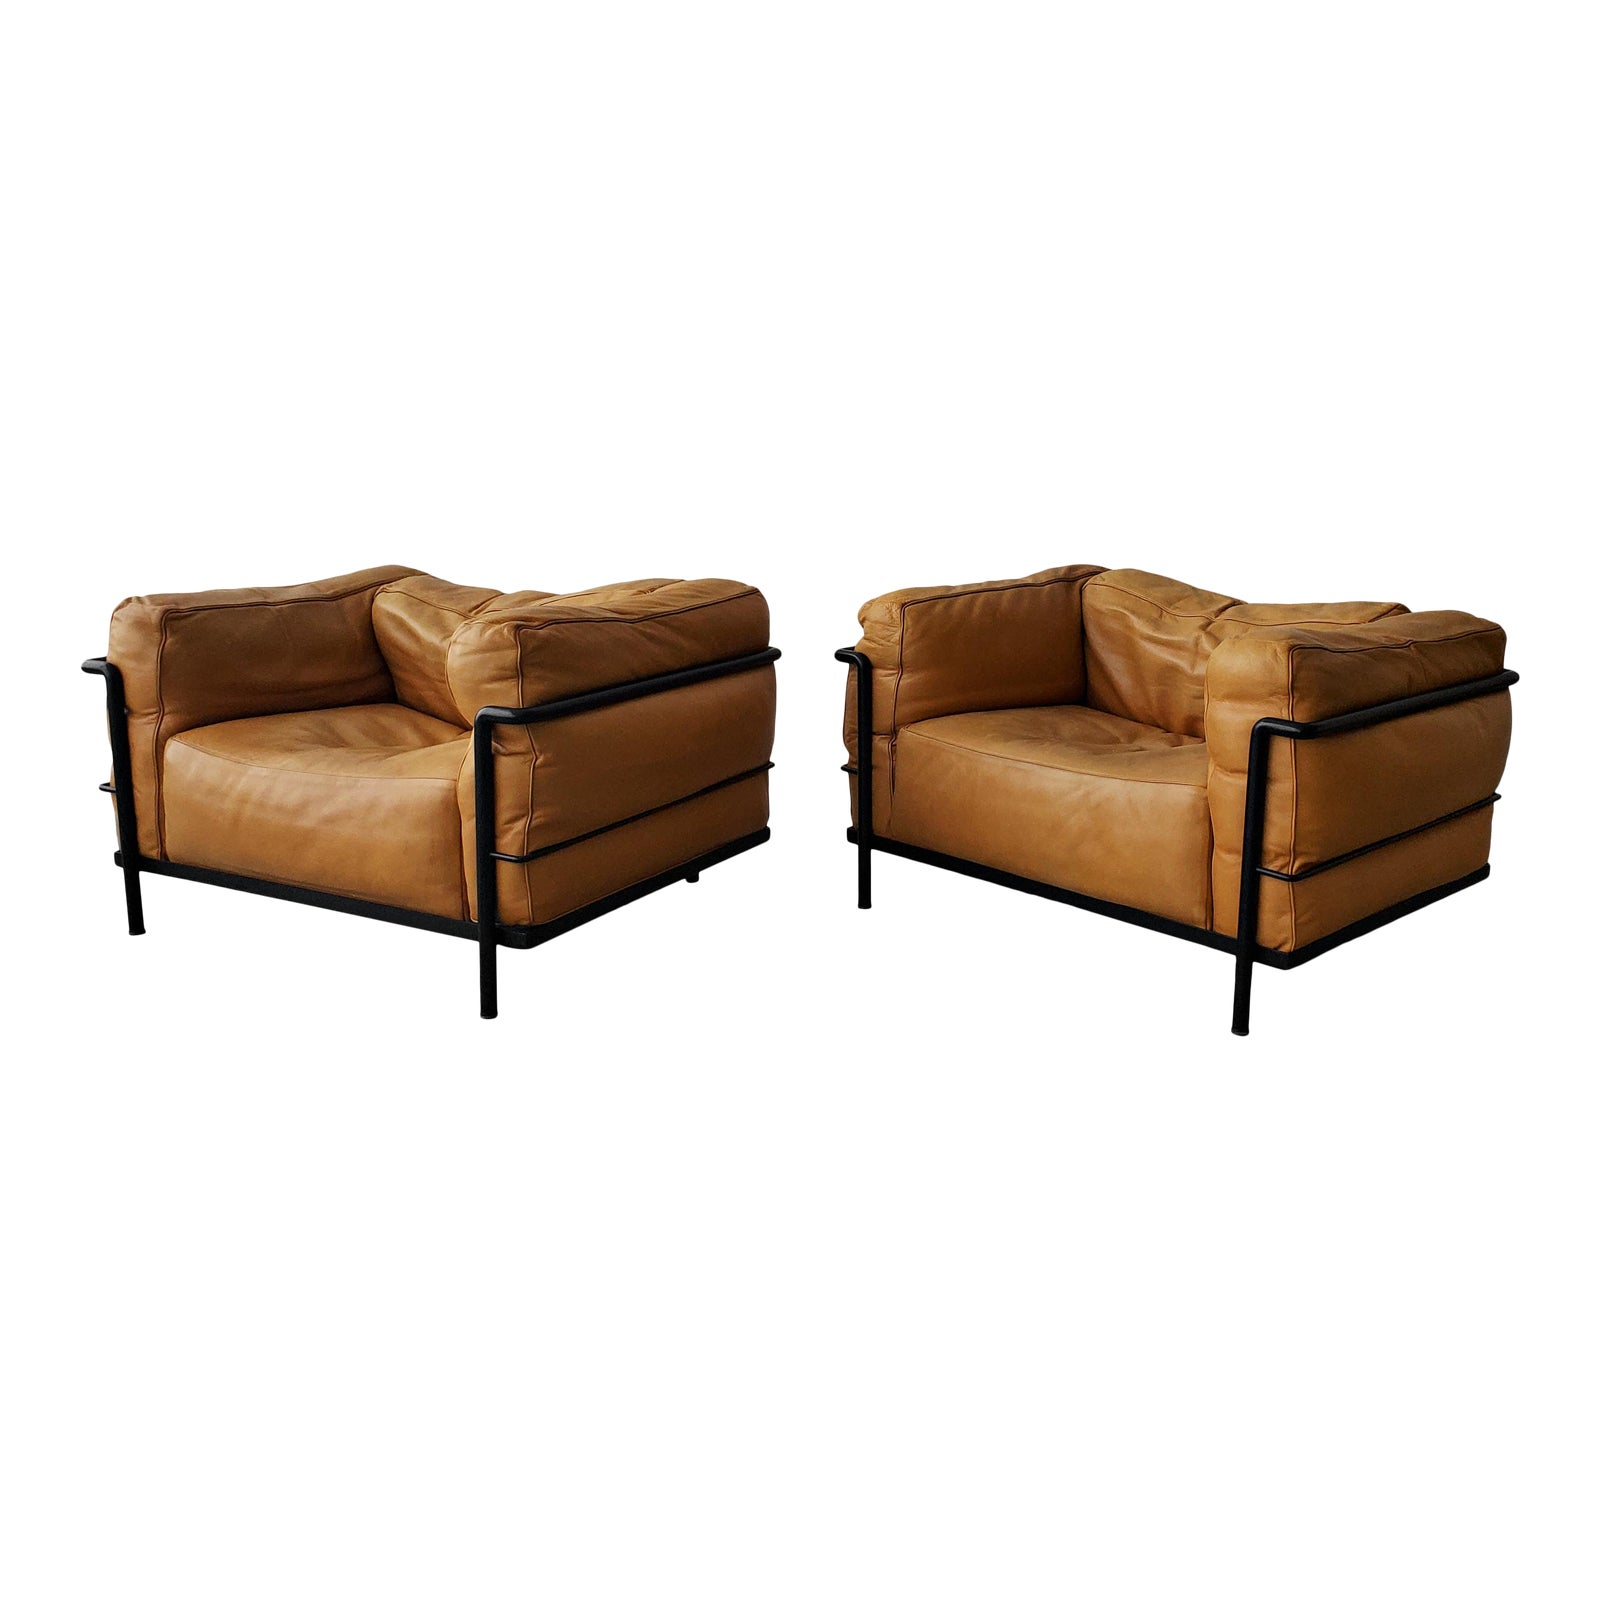 Pair of Authentic Vintage Lc3 Cassina Grand Modele Armchairs by Le Corbusier